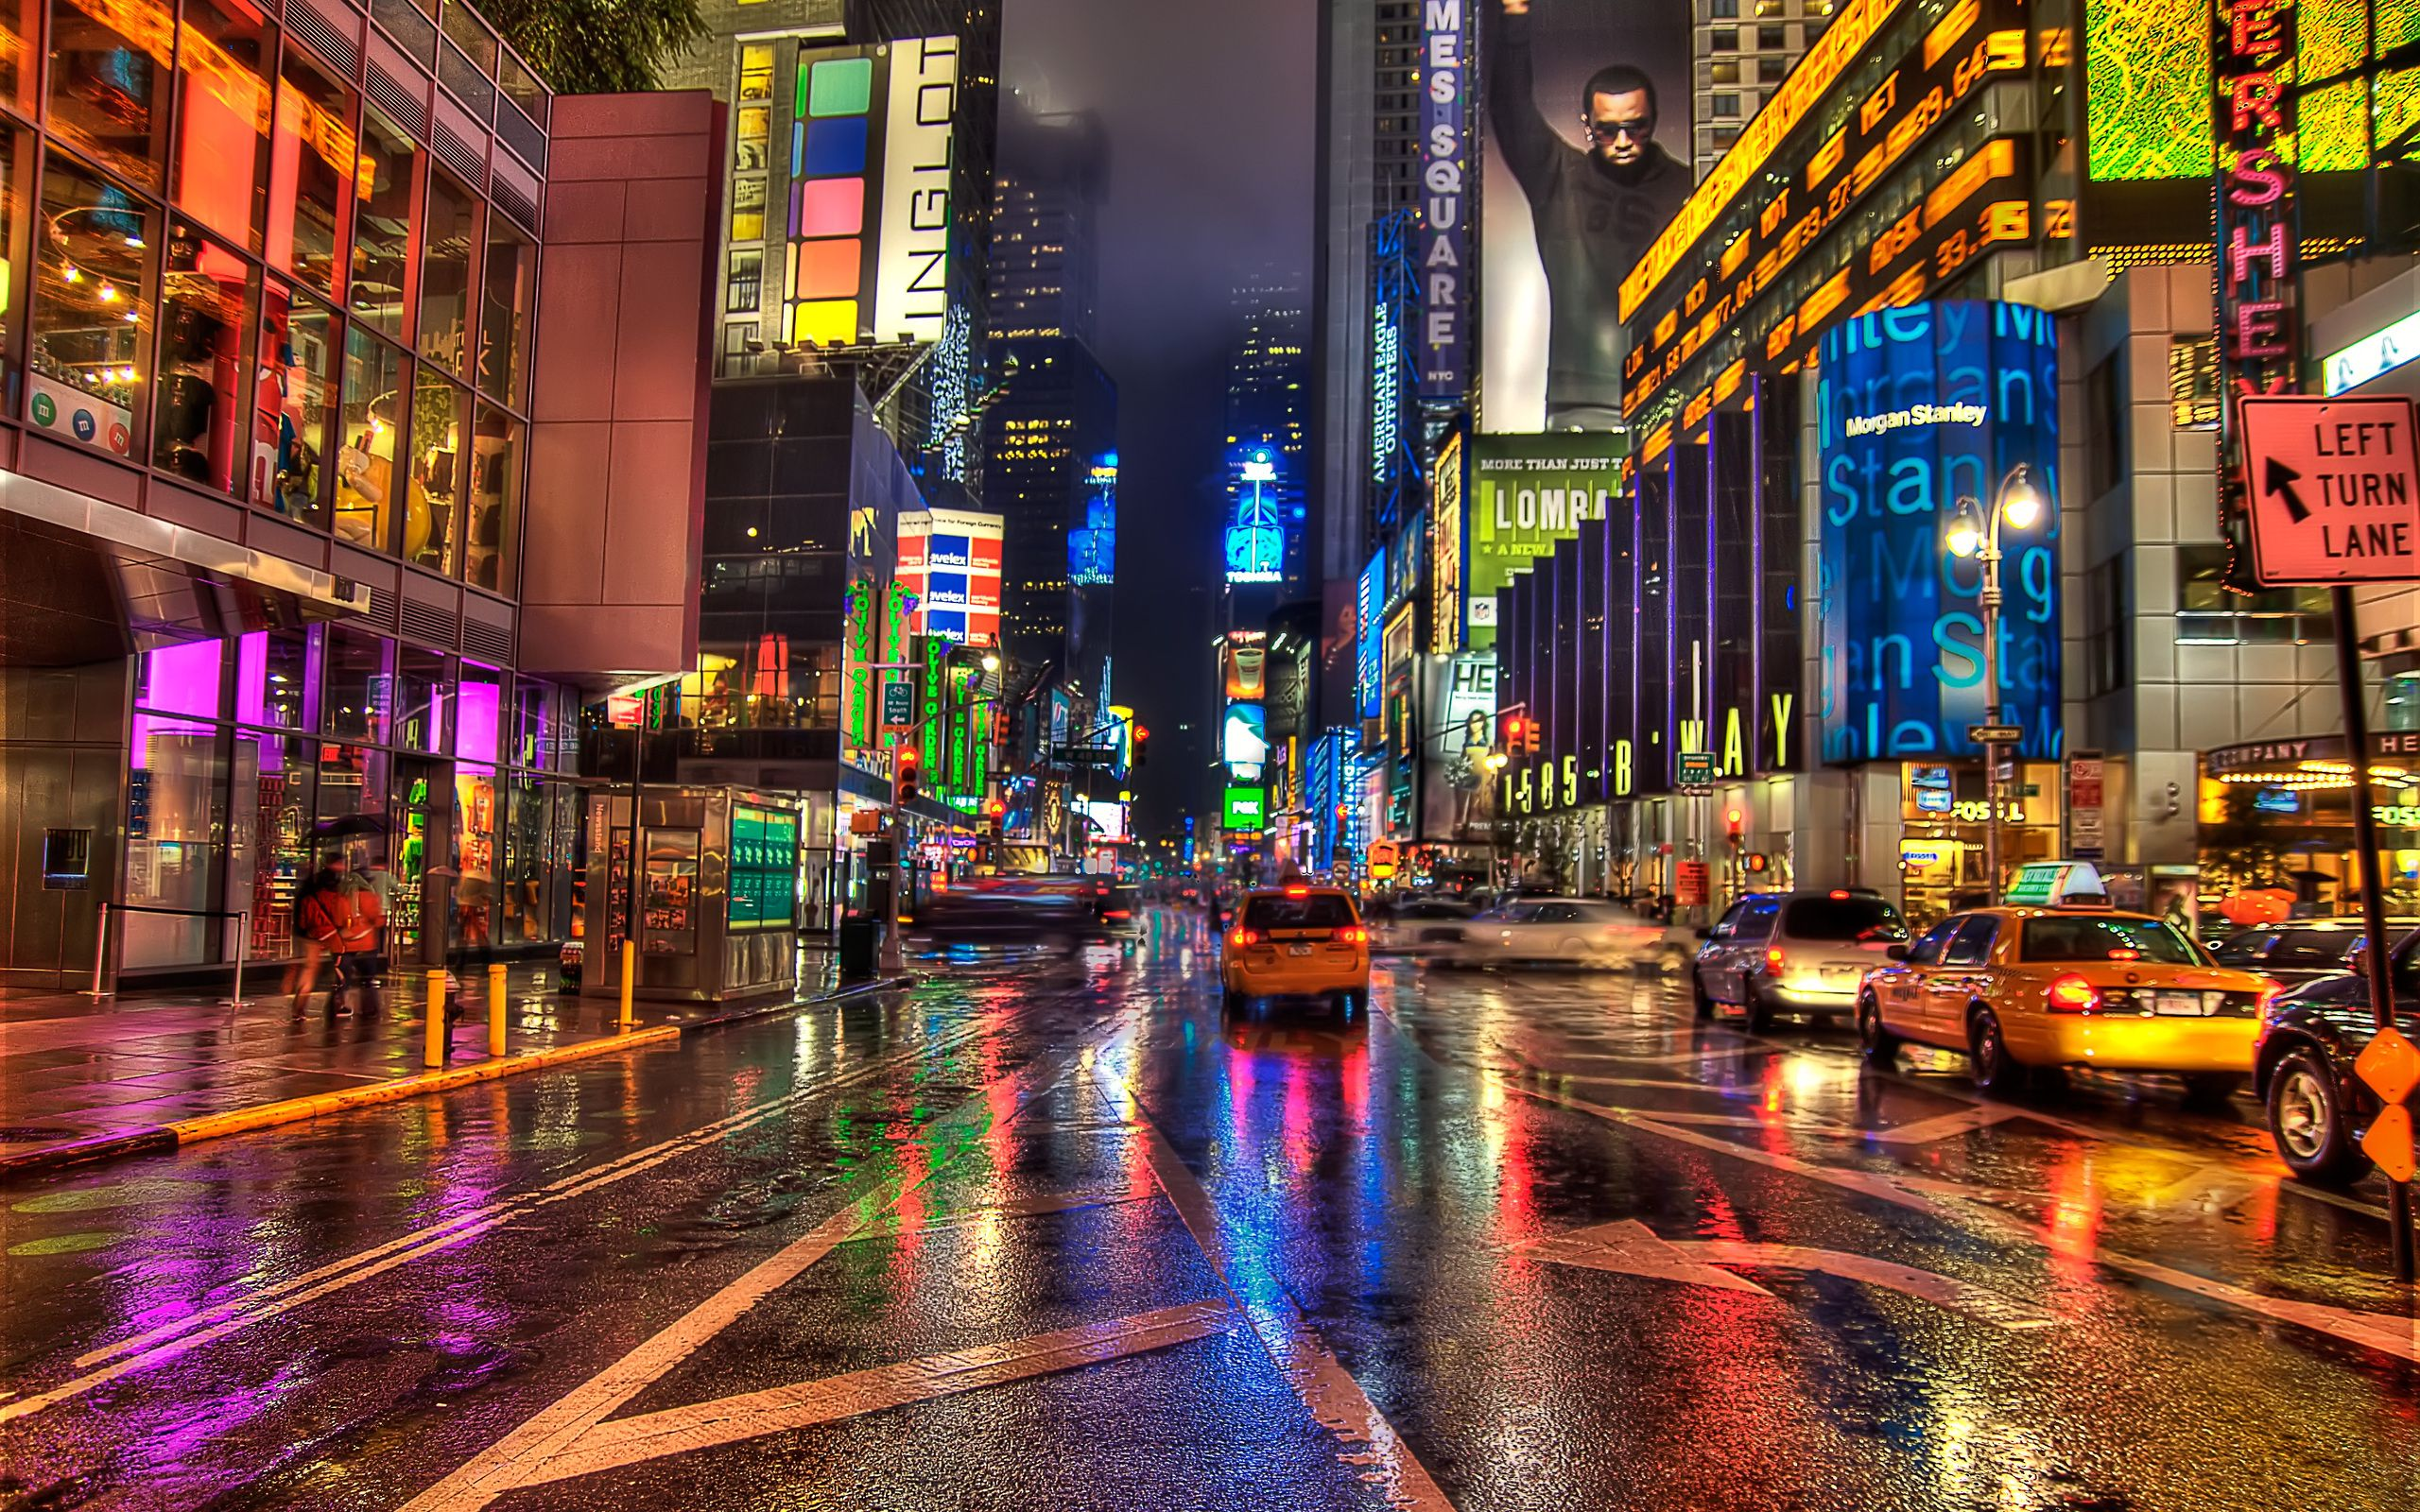 New York Hd New York Wallpaper Nyc Times Square City Wallpaper City buildings road cars night street